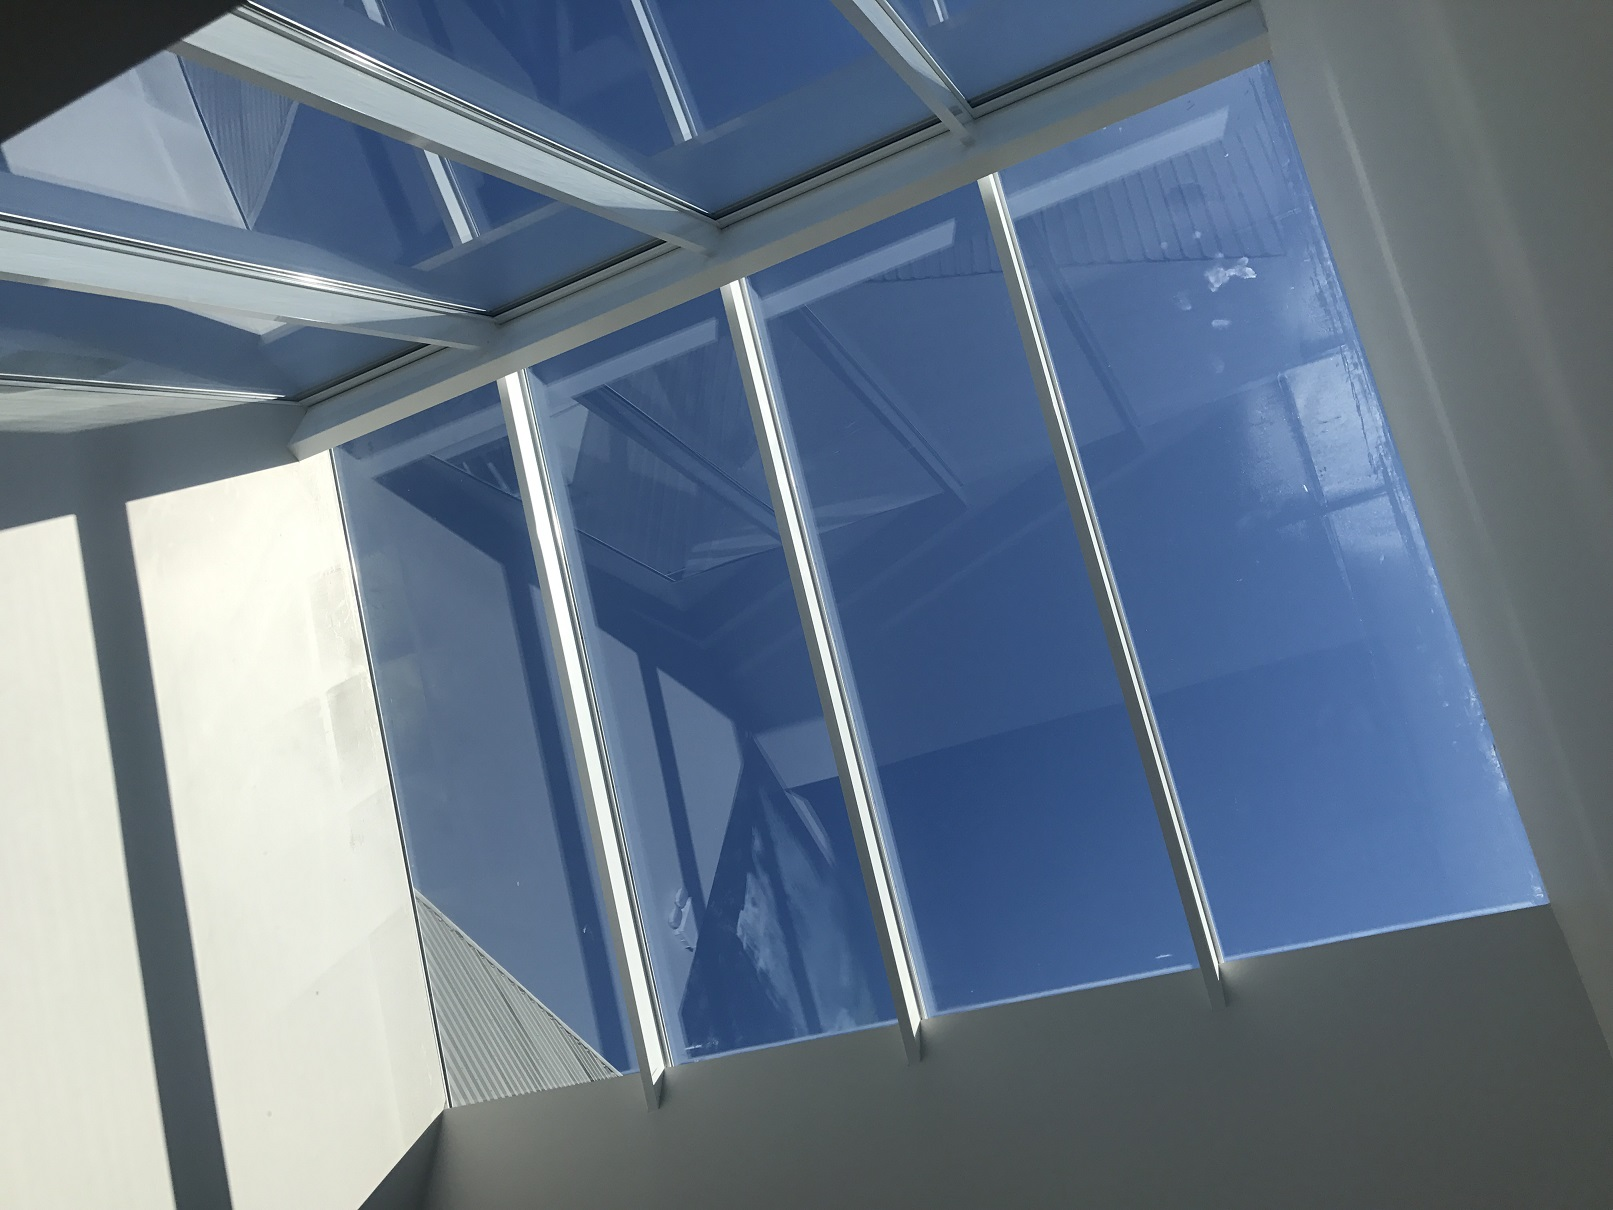 Overhead Glazing Systems : Let the light flood in with spectrum overhead glazing